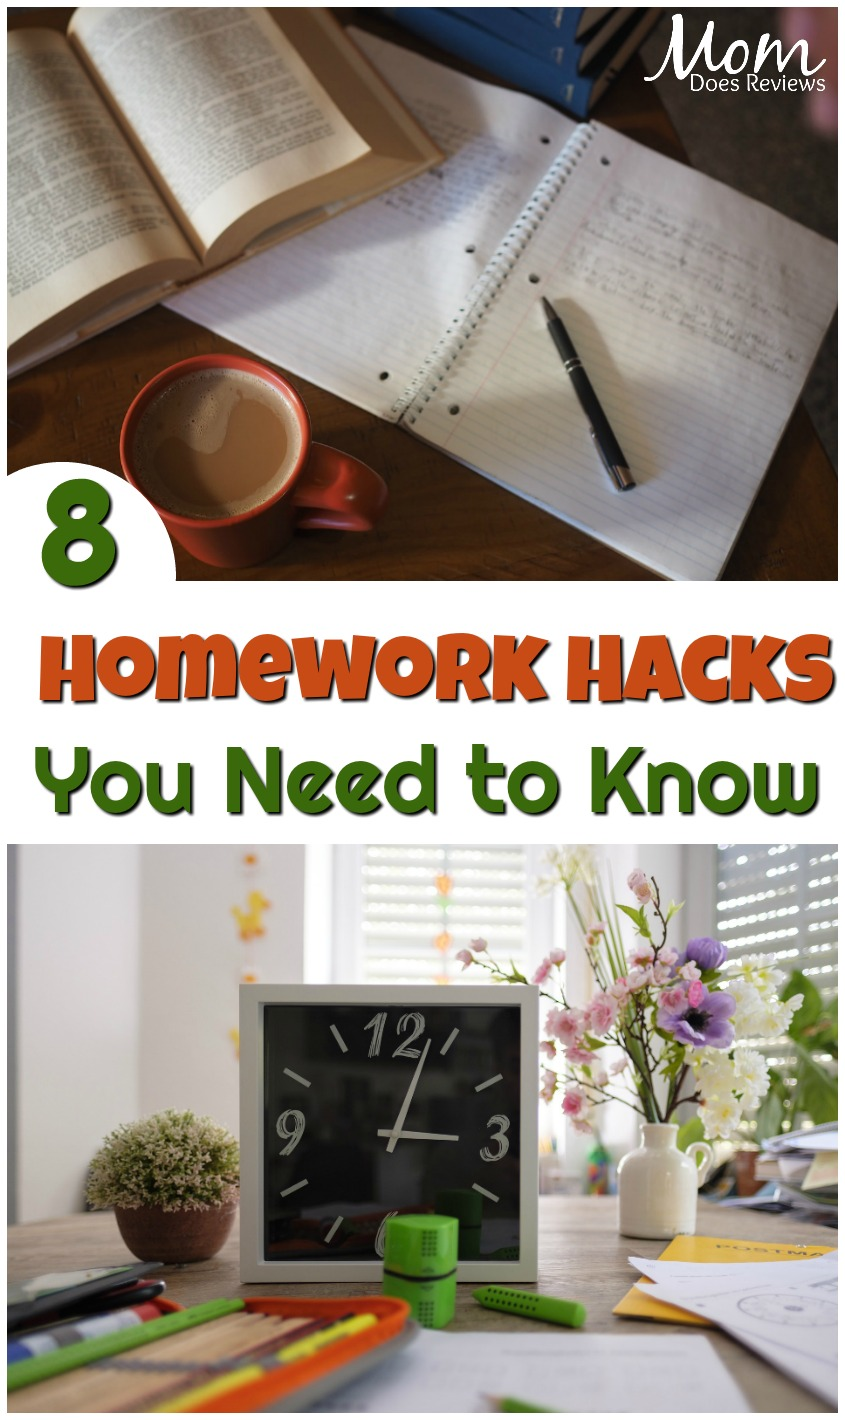 Homework Hacks: 8 Tips to Make it Easier and Faster #education #homework #student #studying